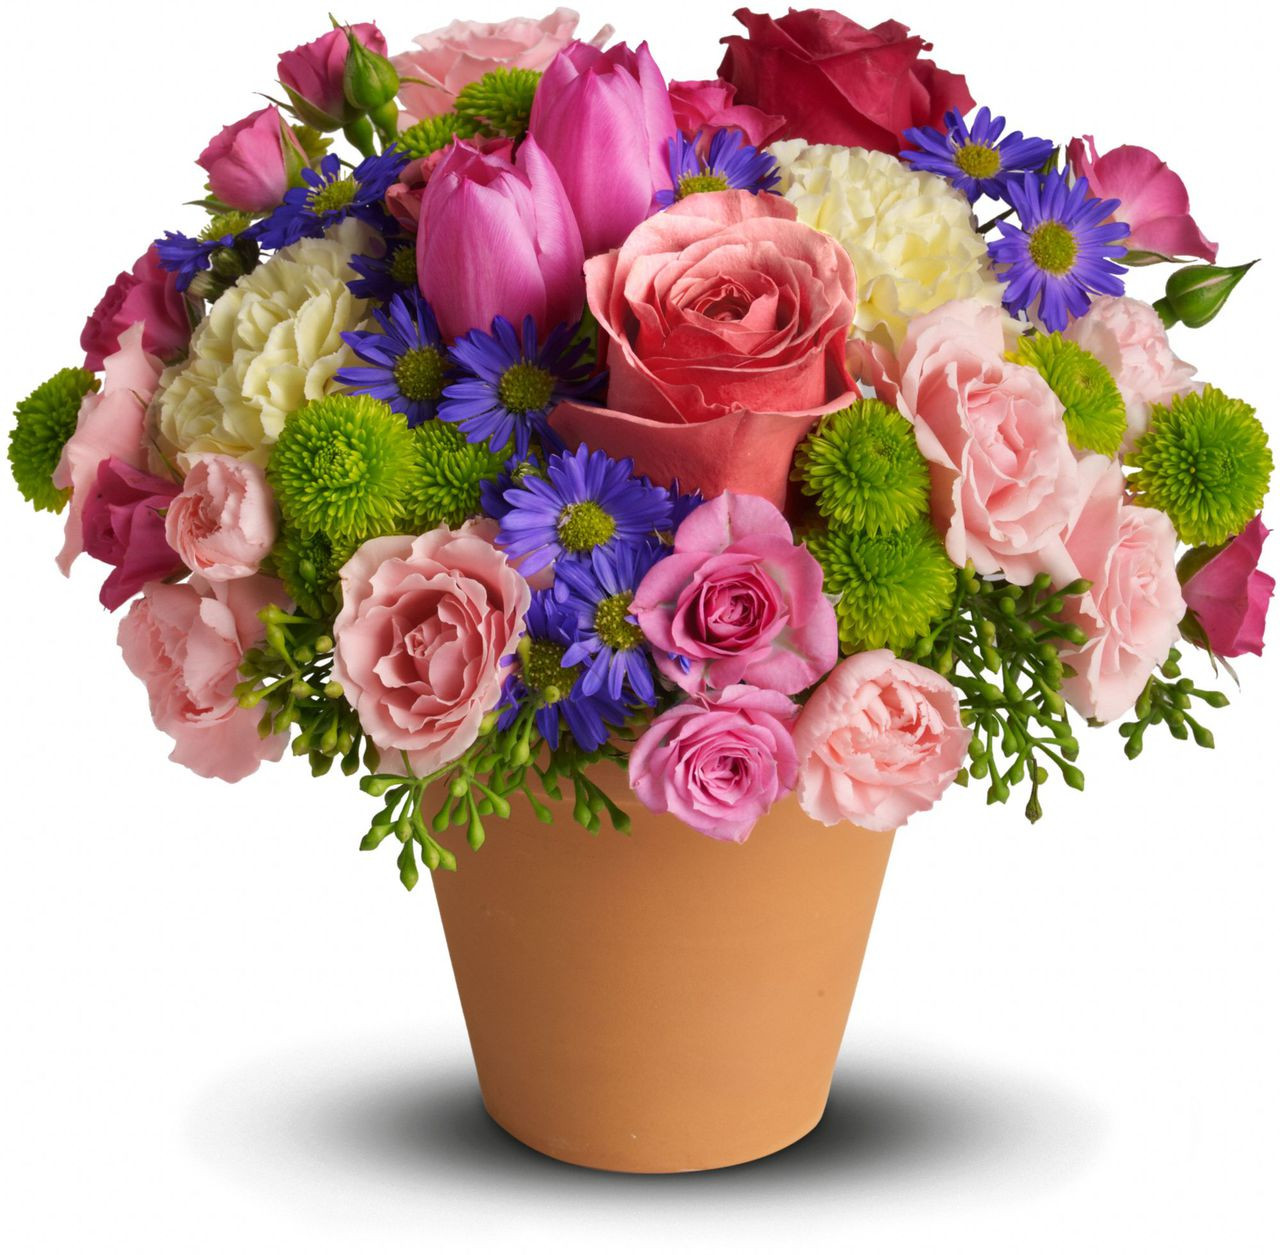 Local Portland Florist For Delivery Of Flowers In Portland Oregon